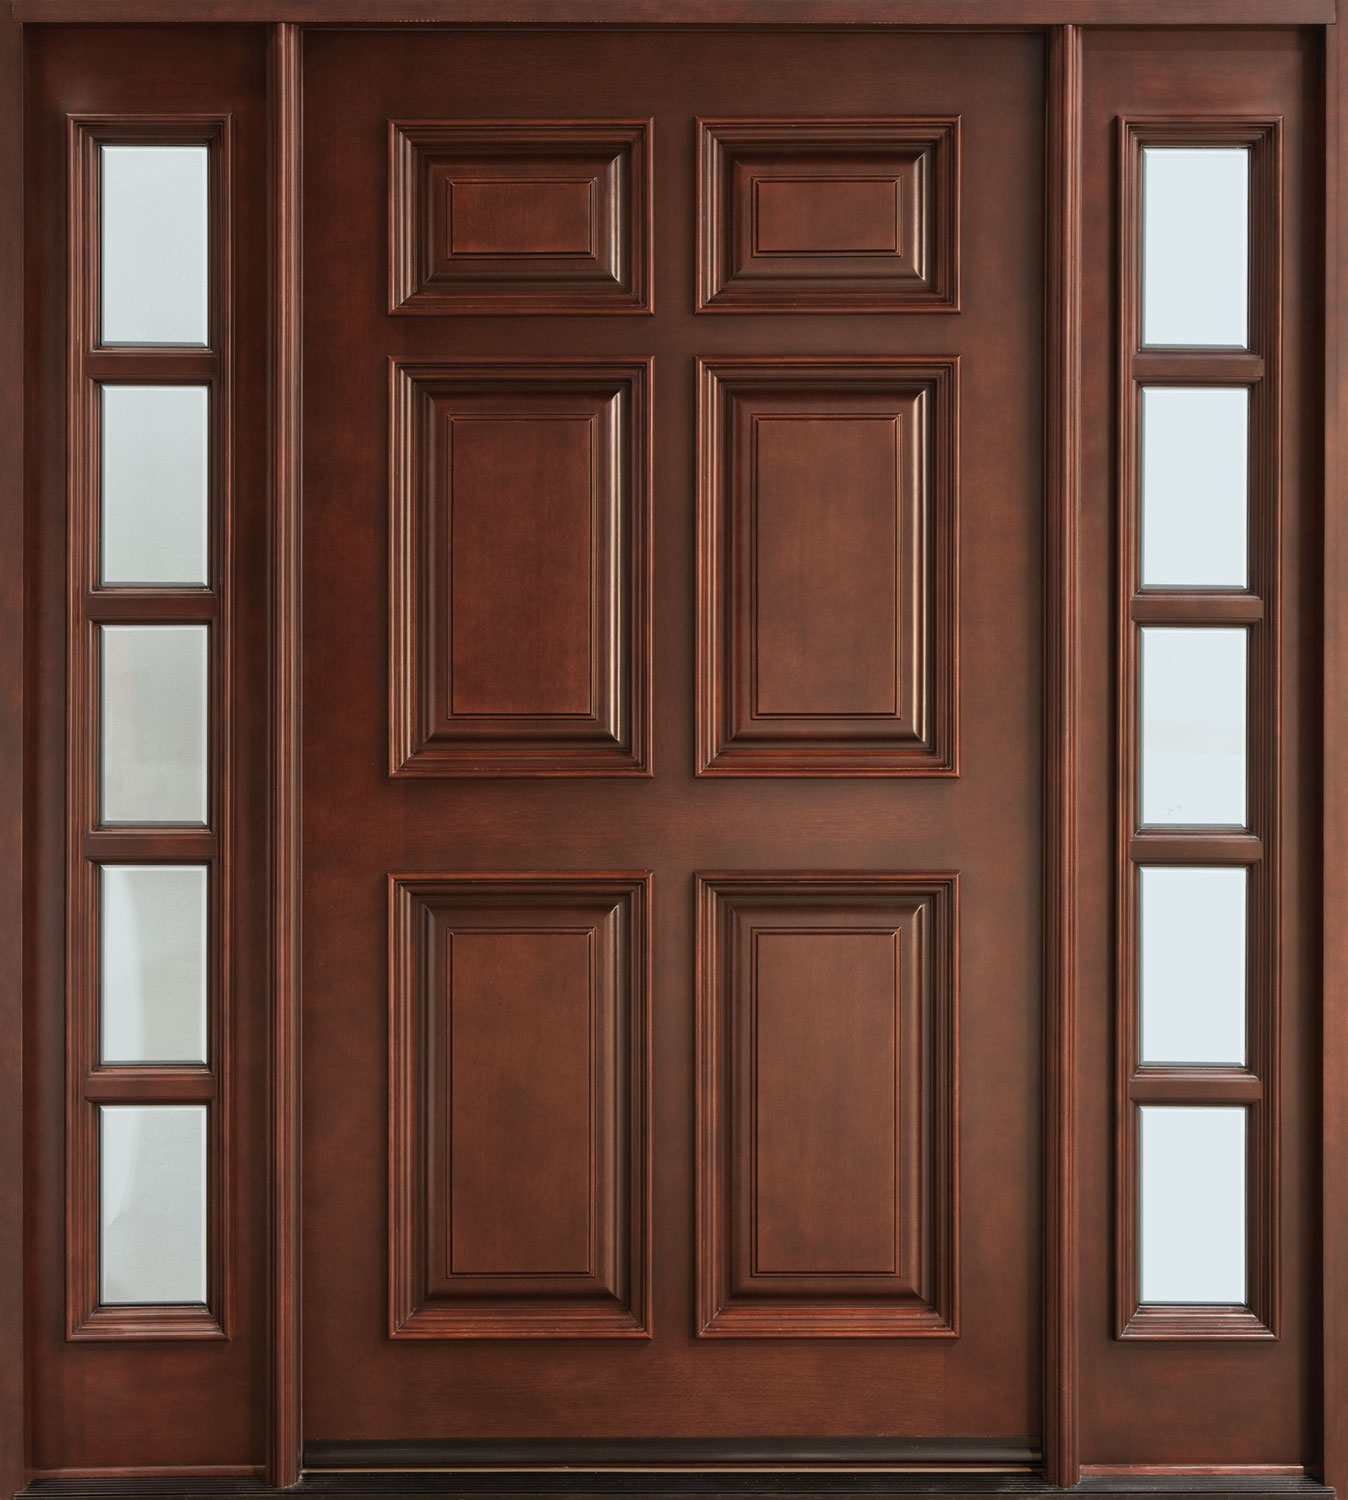 Wooden Exterior Doors Cute With Image Of Wooden Exterior Collection ...